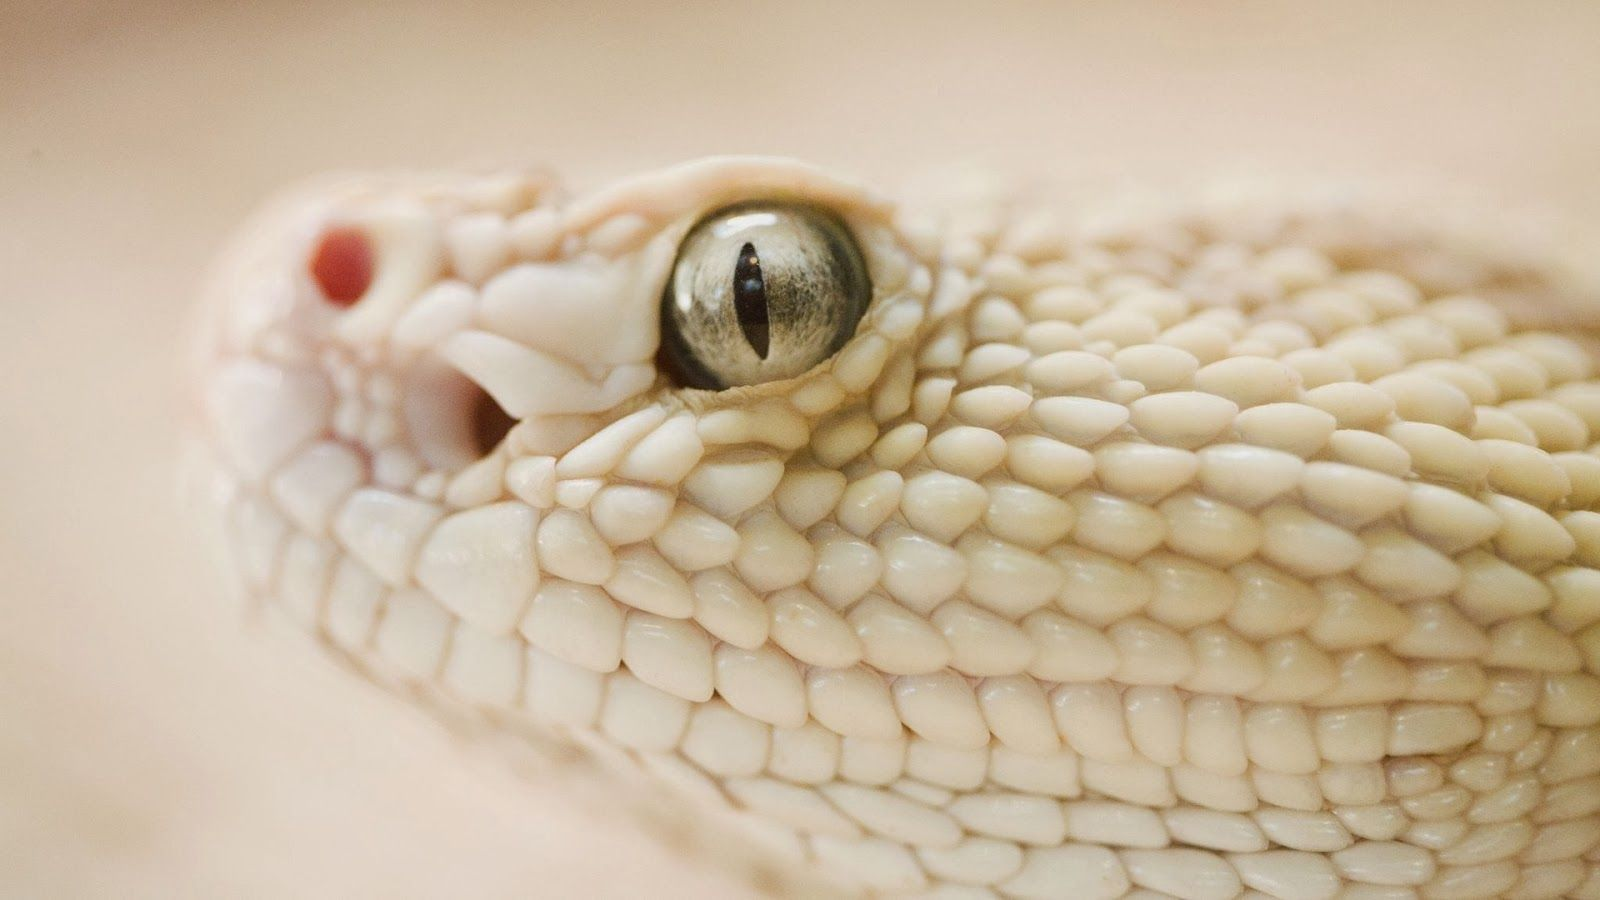 white snake wallpapers | hd wallpapers | reptiles, animals, snake